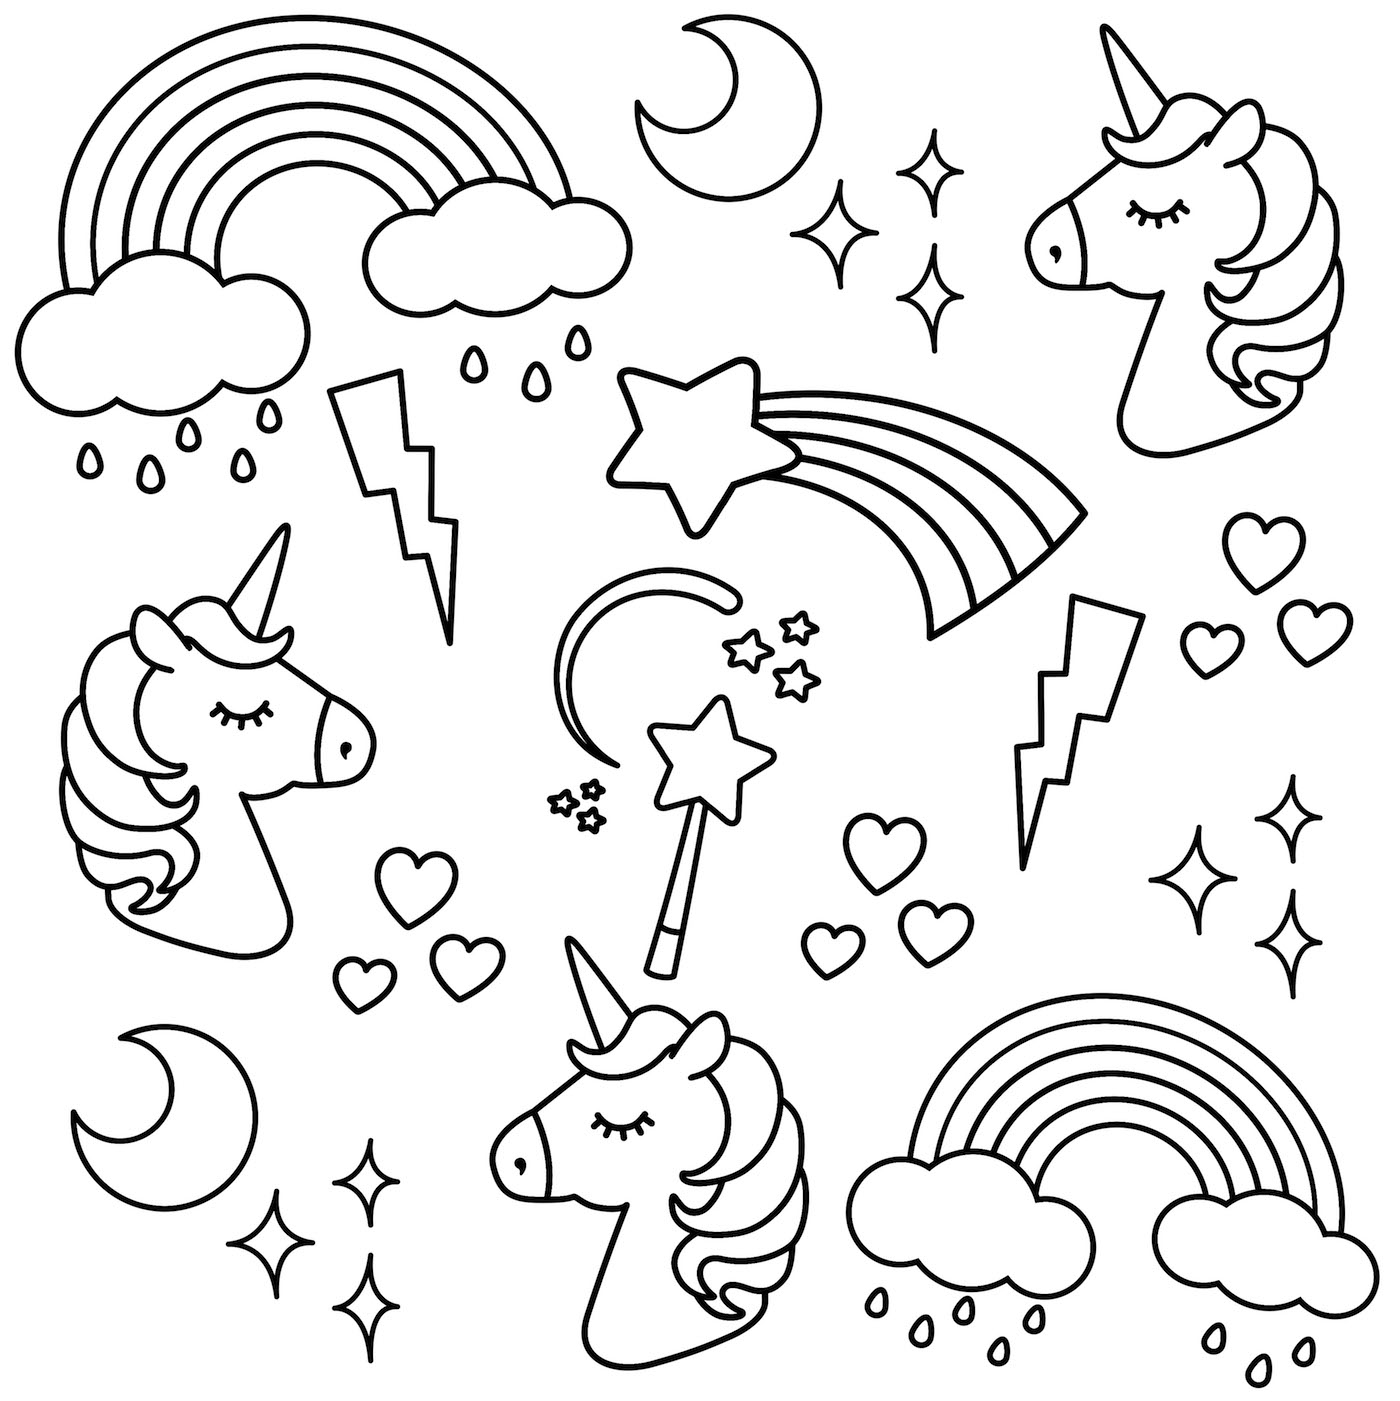 coloring pictures of unicorns unicorn coloring pages to download and print for free pictures of coloring unicorns